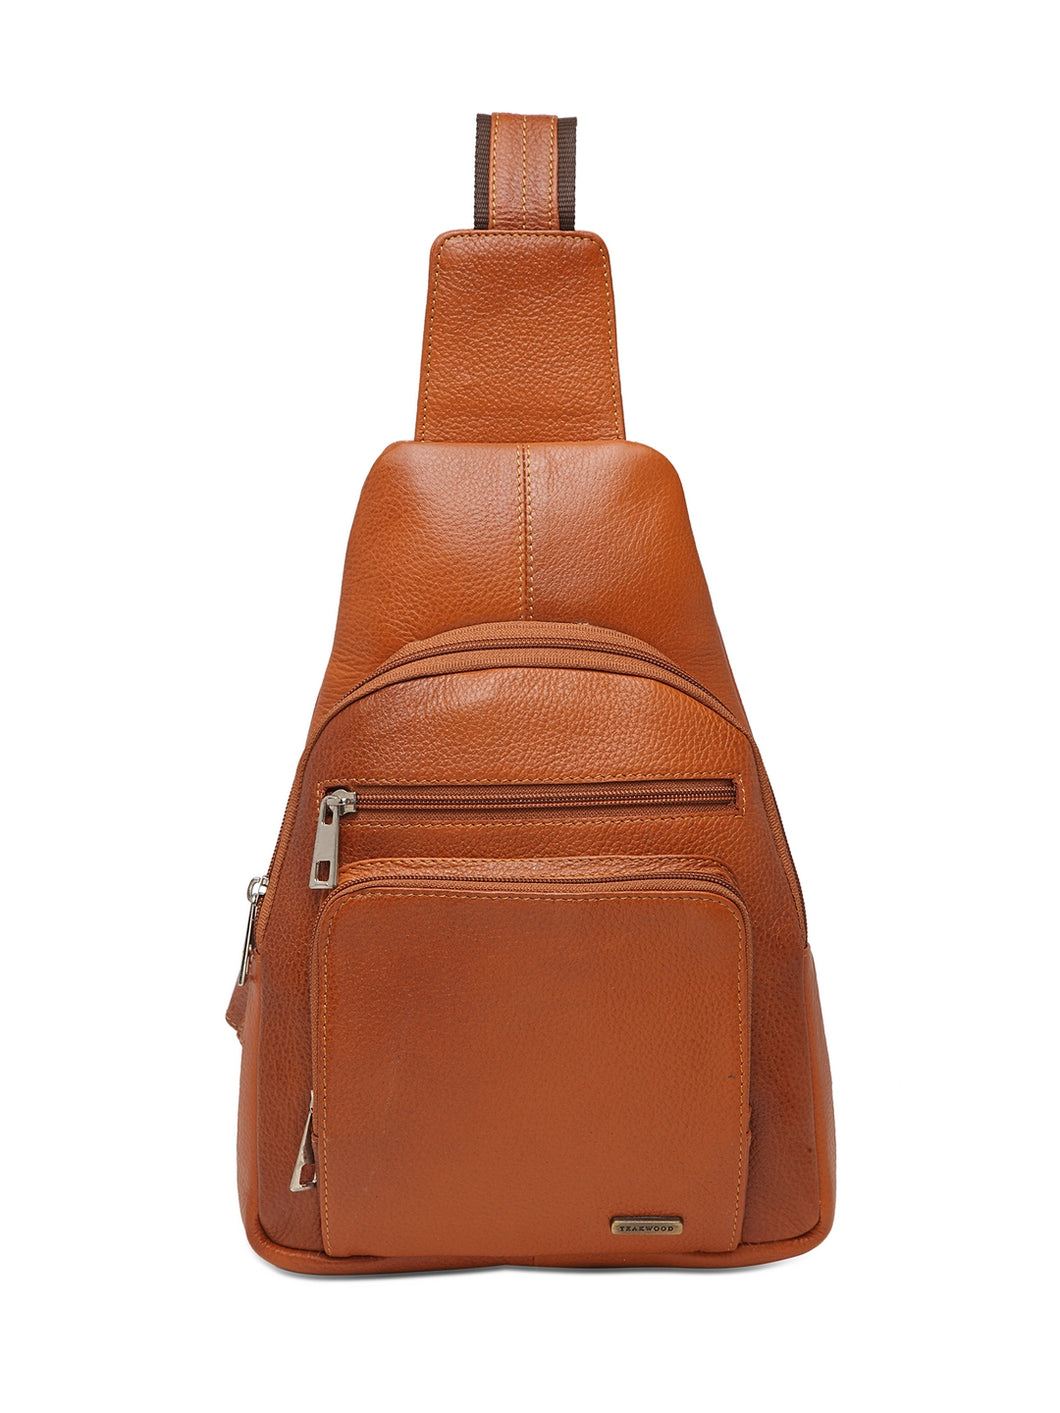 Teakwood Genuine Leather Cross Body Sling Messenger Bag || Lightweight Backpack Chest Shoulder Bags for Travelling, Hiking, Cycling (Tan)